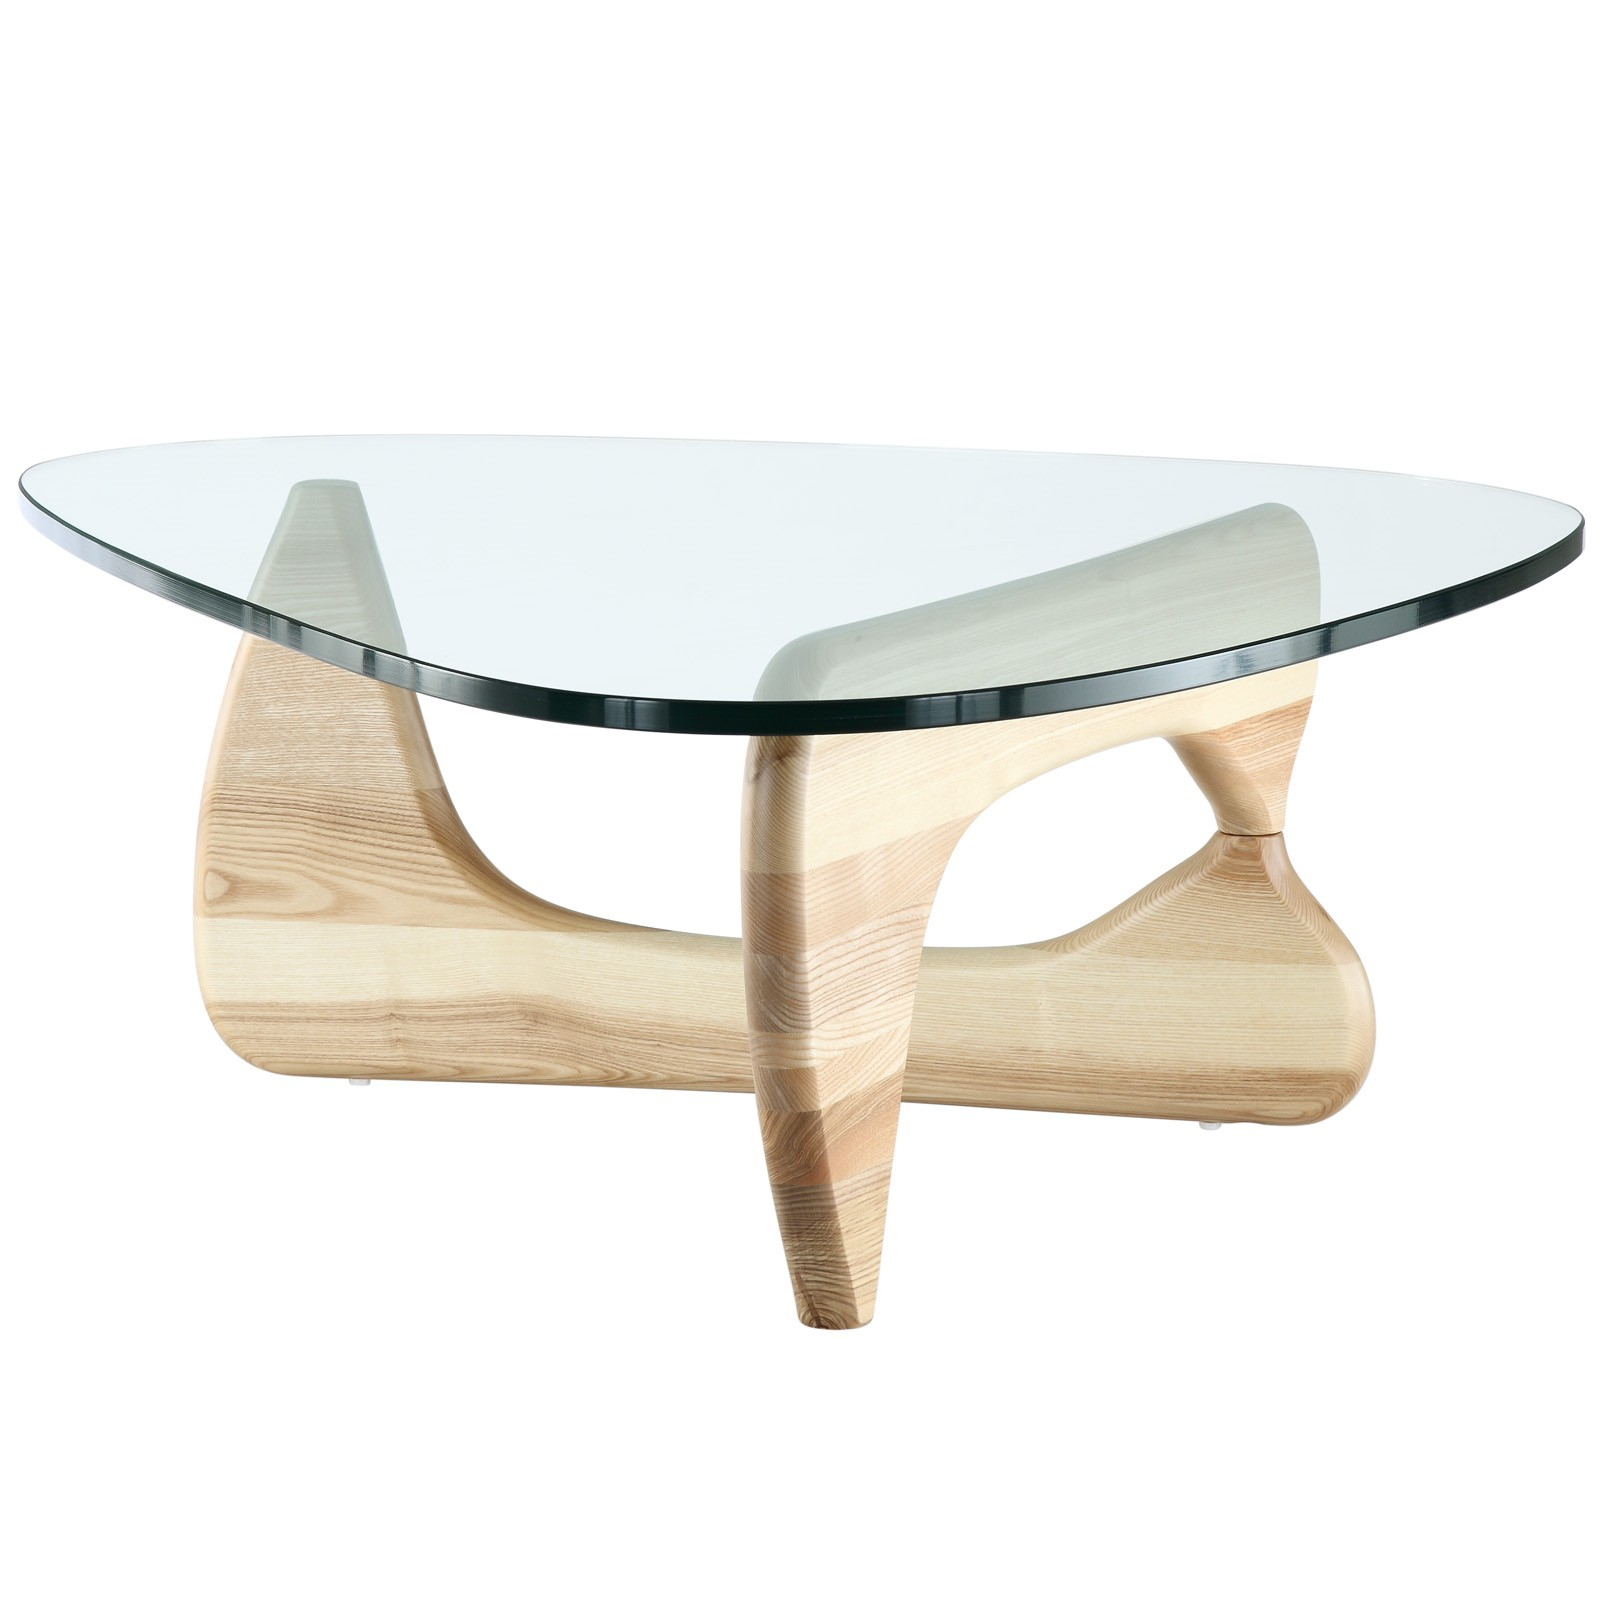 Picture of: noguchi coffee table ideas